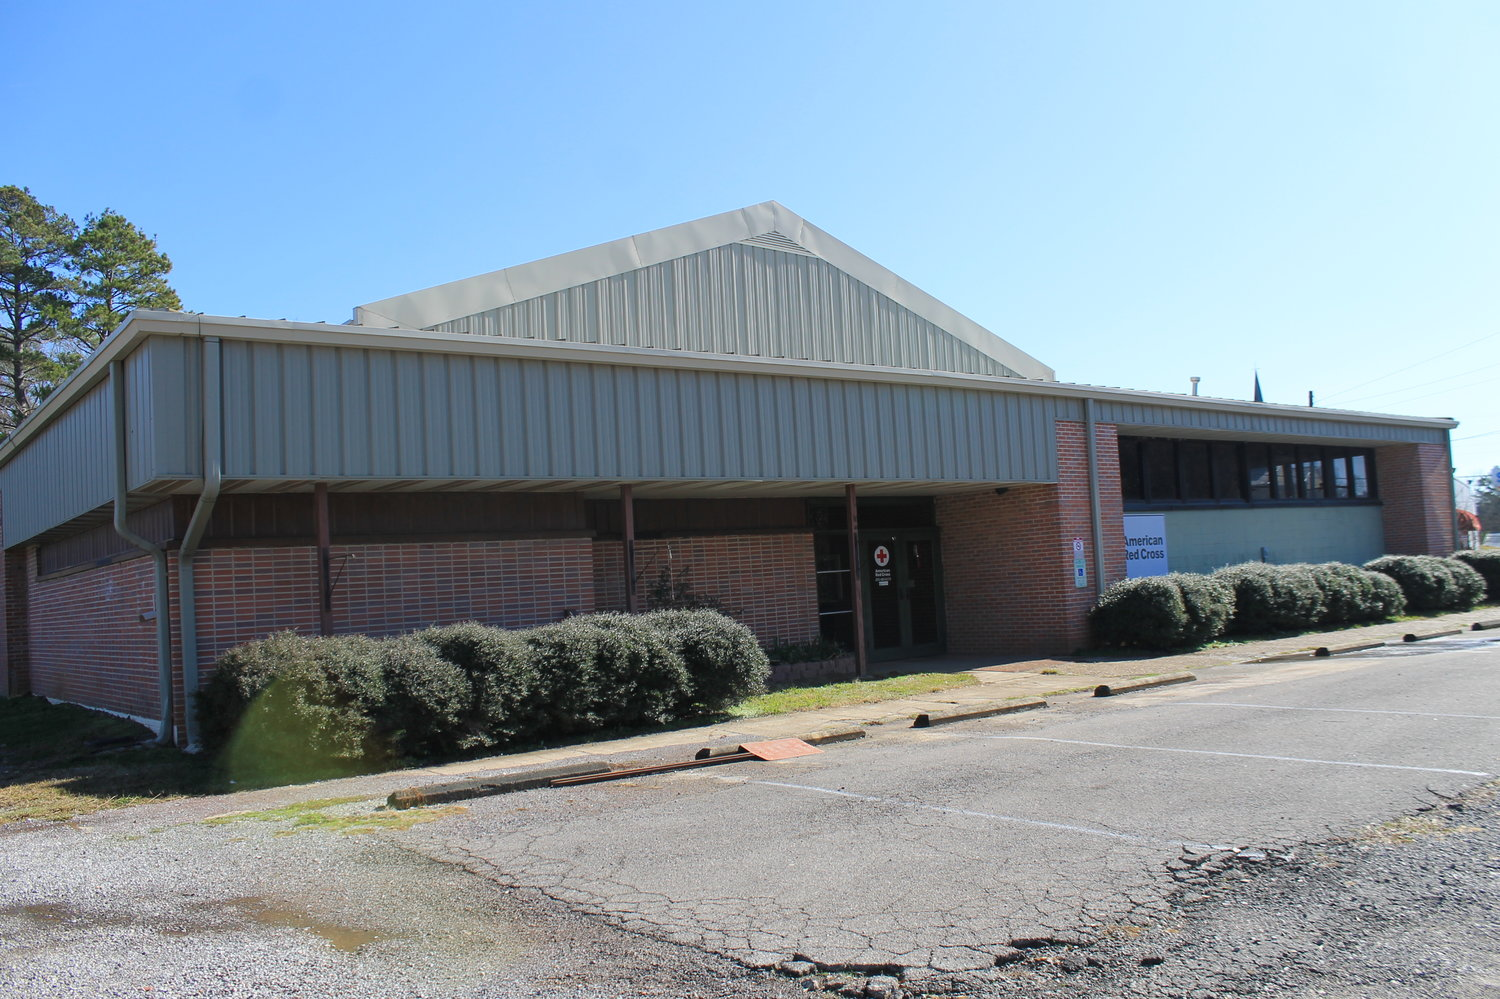 National Guard Armory Christmas Show 2020 Council discusses selling Armory | Daily Mountain Eagle